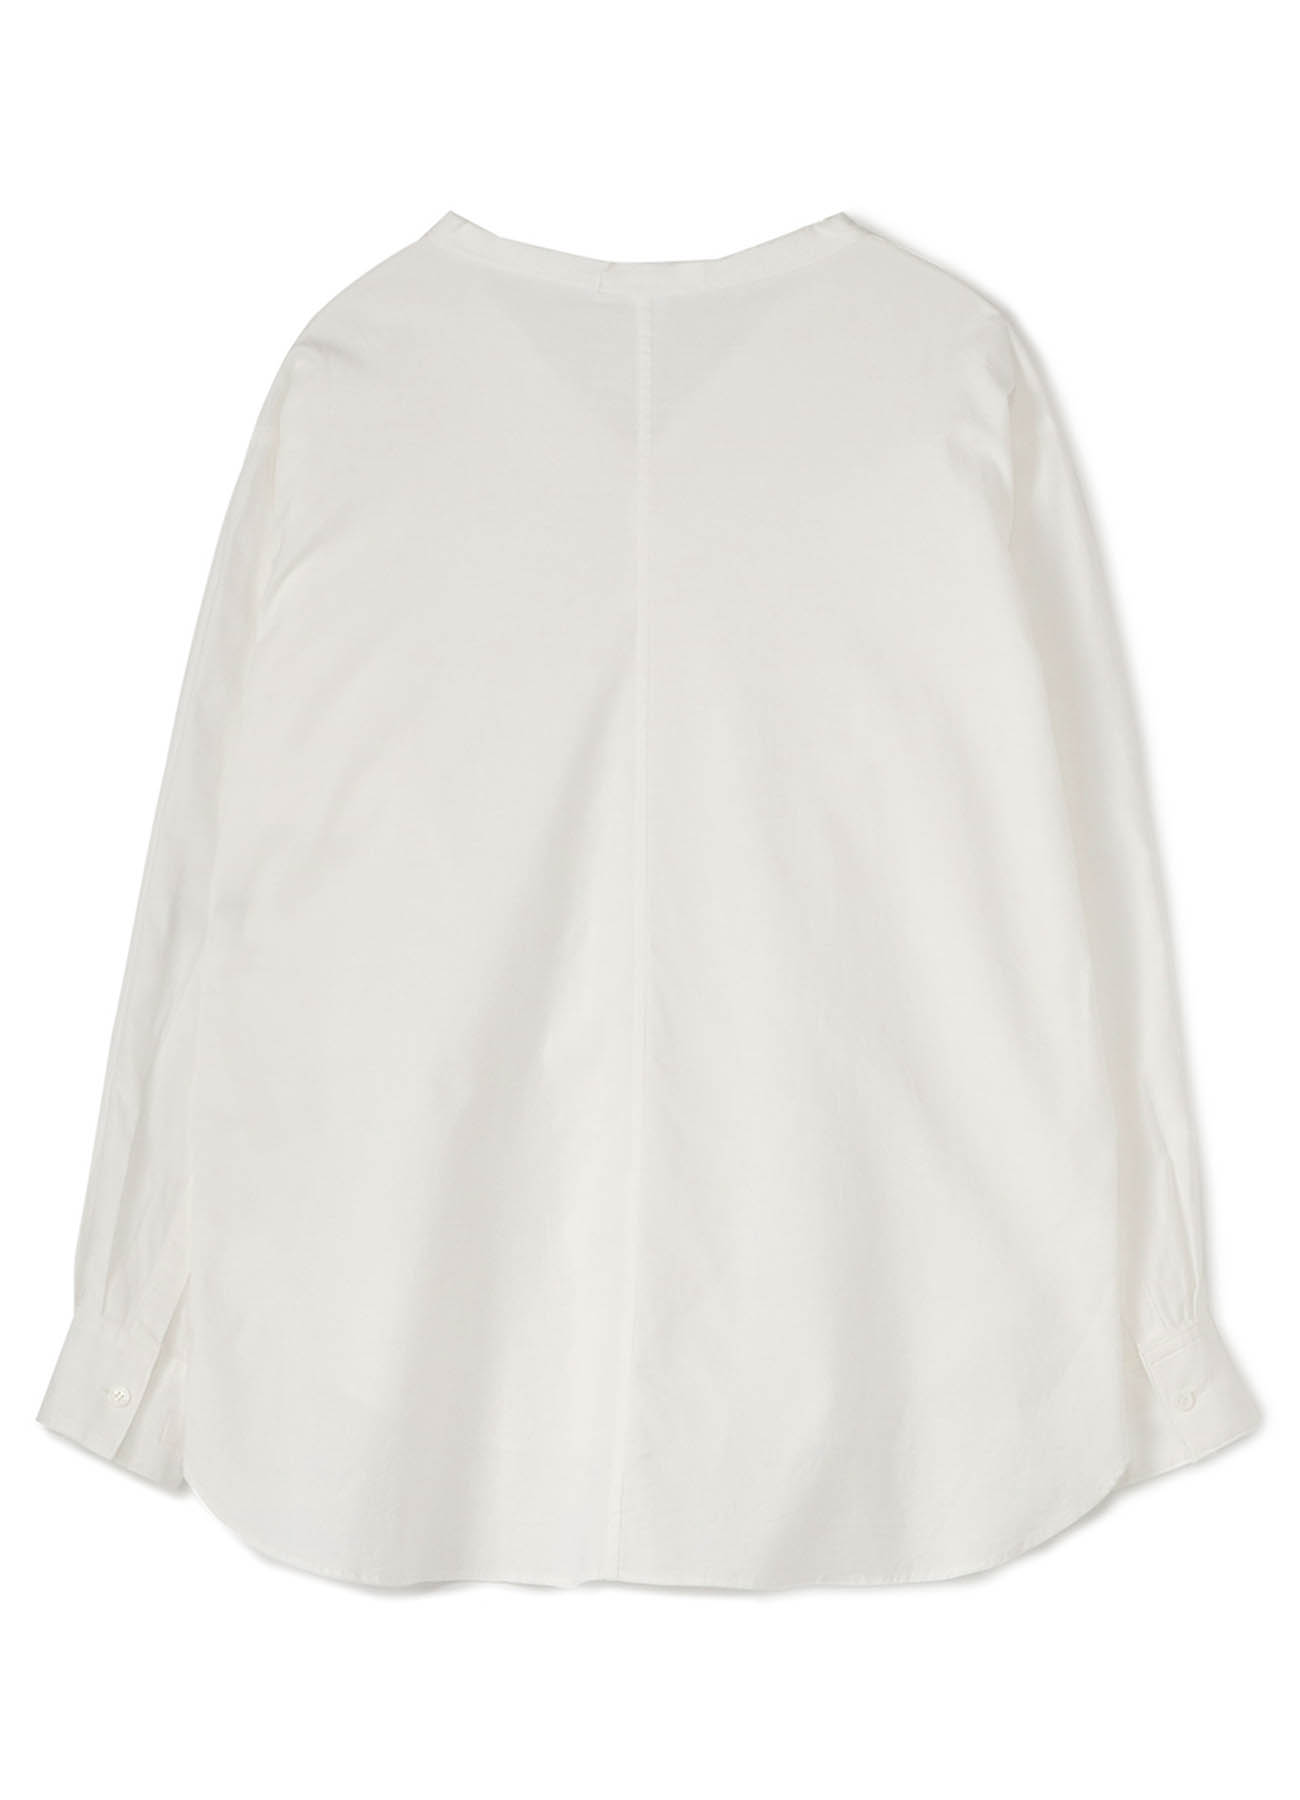 C/ THIN TWILL CUTTING OUT COLLAR BLOUSE